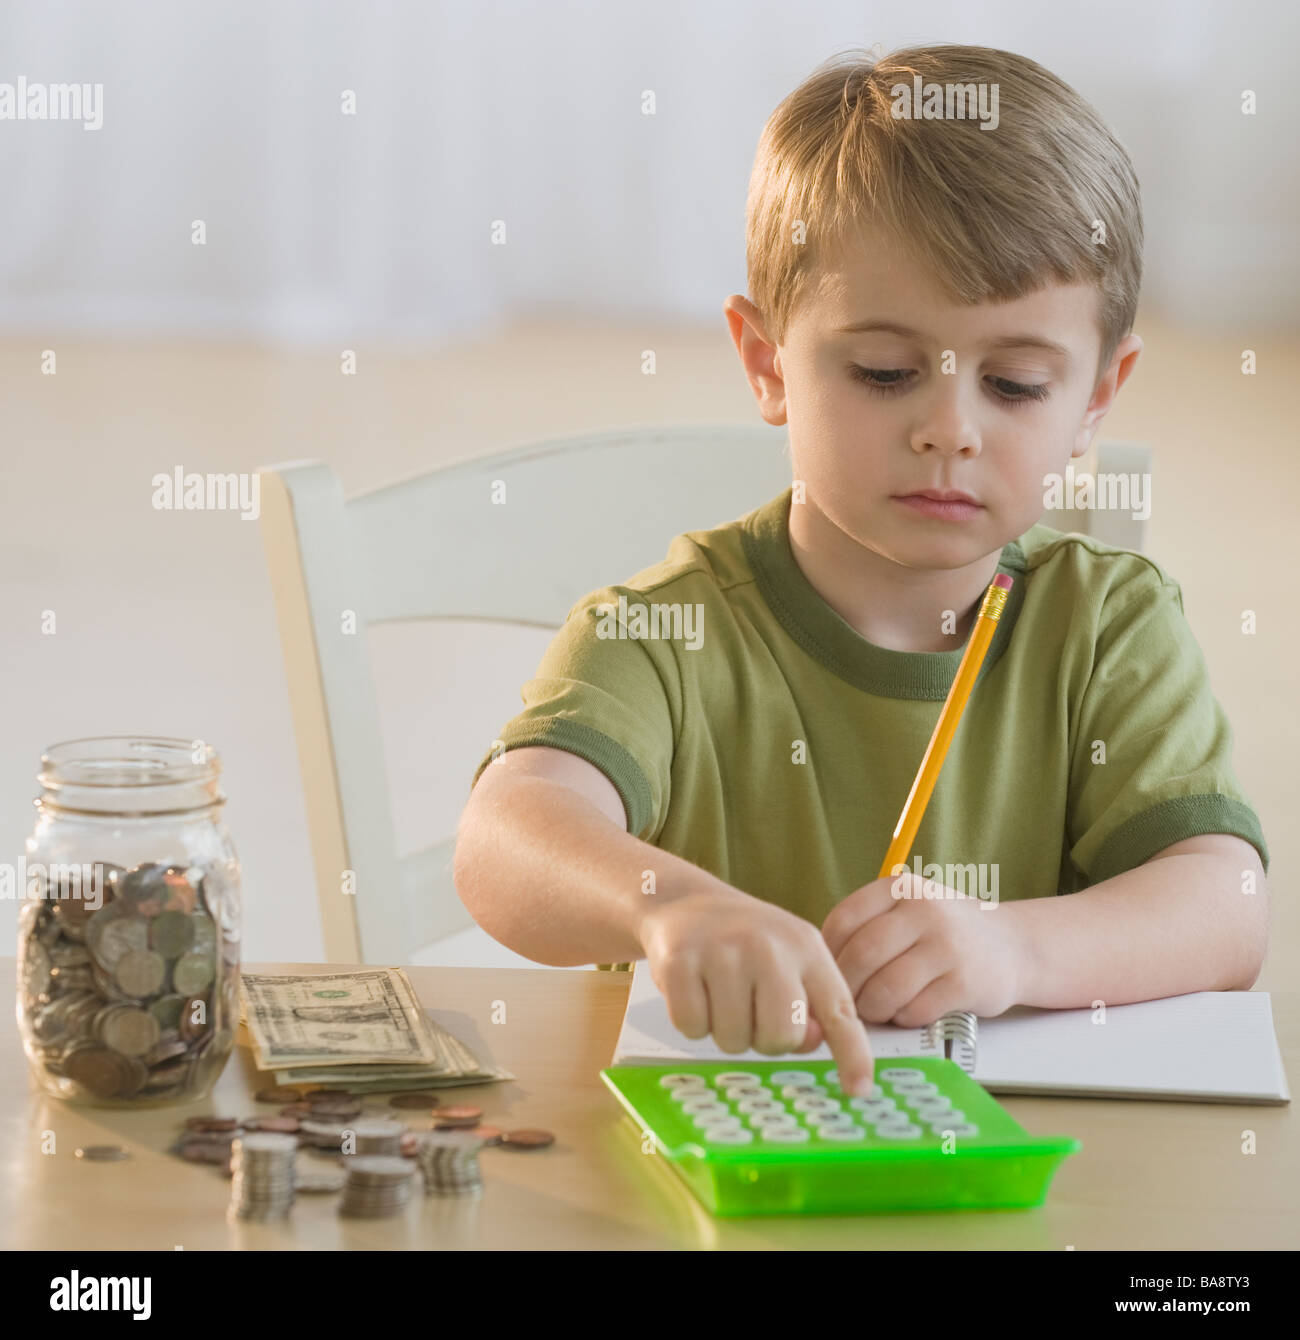 Boy calculating personal finances - Stock Image